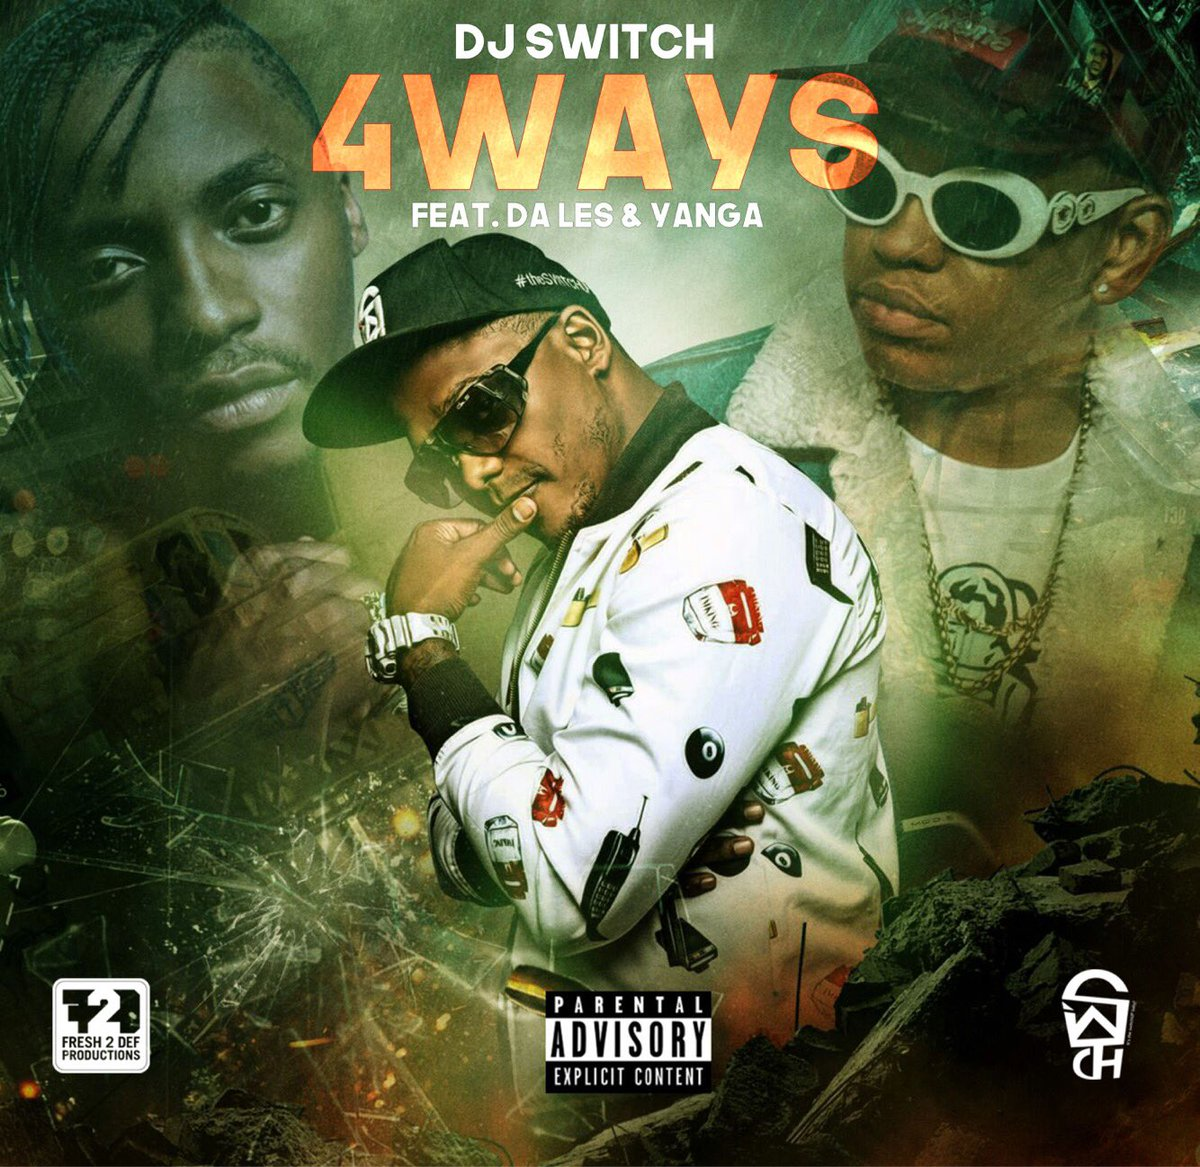 Listen to DJ Switch's New '4 Ways' Joint Ft. Da L.E.S & Yanga C4stPI7WIAIDssj